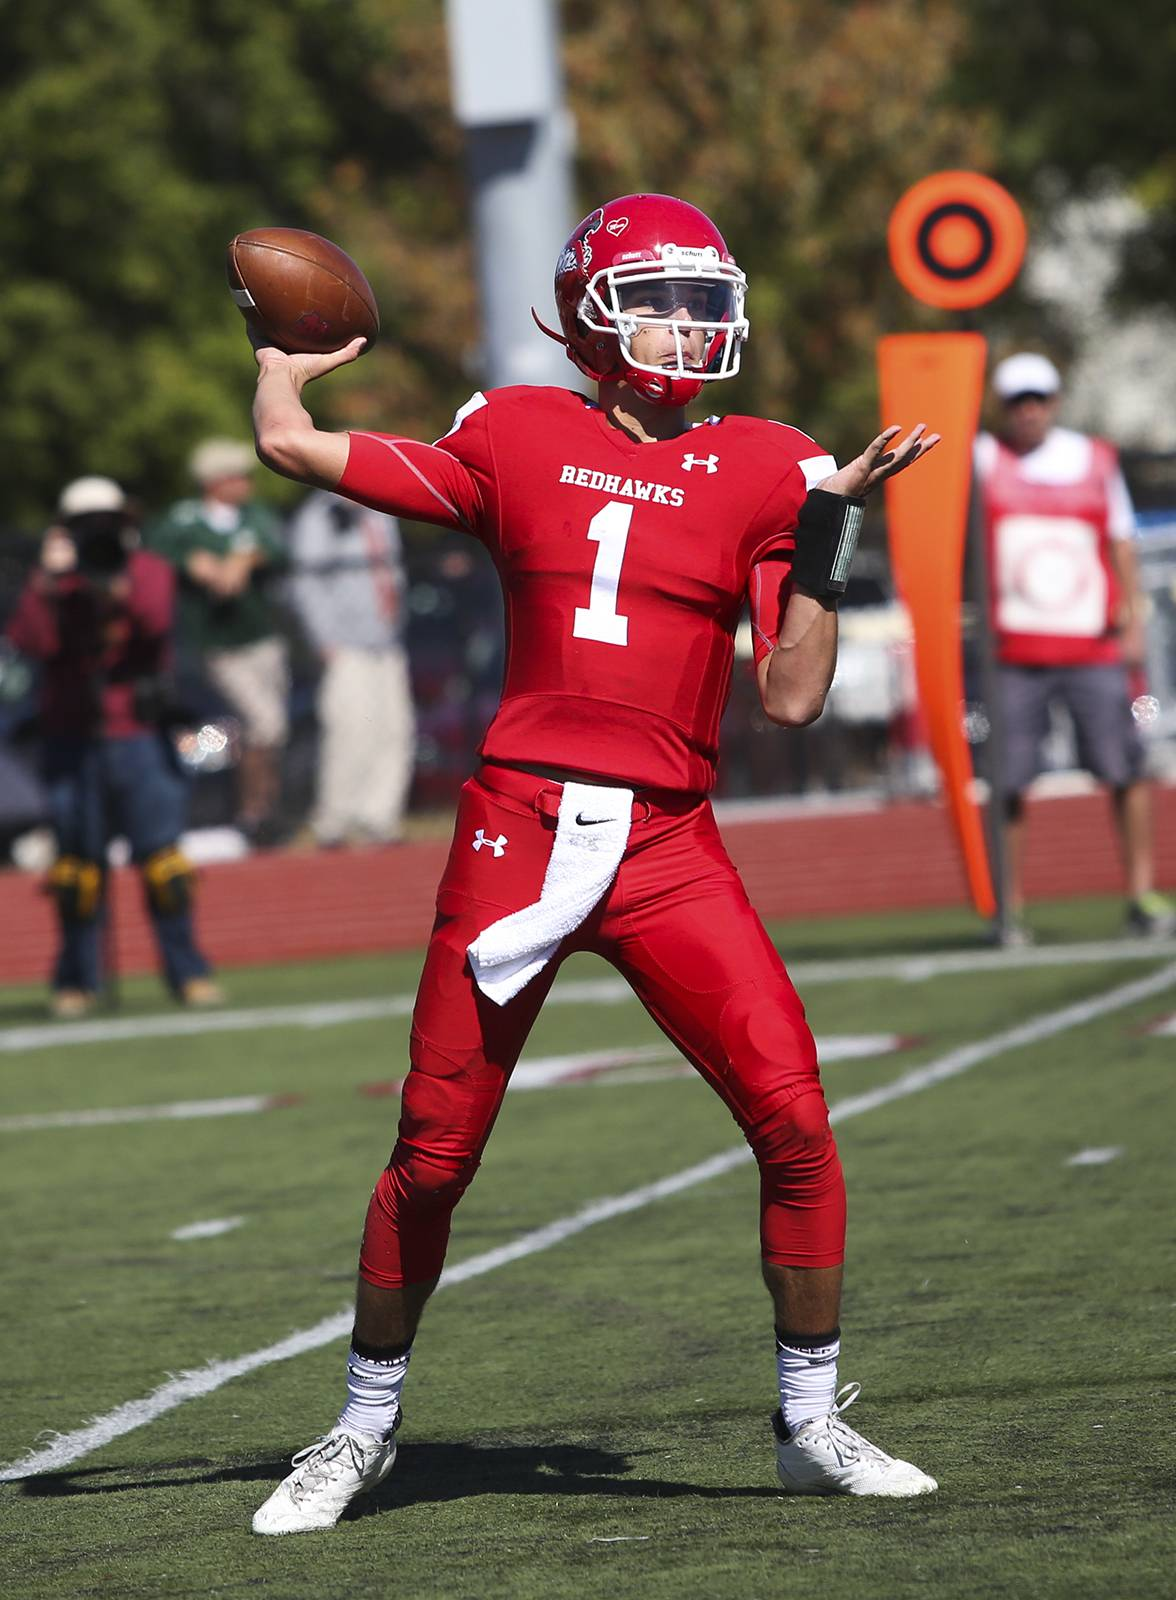 Naperville Central's Payton Thorne passes for a touchdown against St. Edward (Ohio) in Naperville, Ill. on Saturday, Sep. 30, 2017.